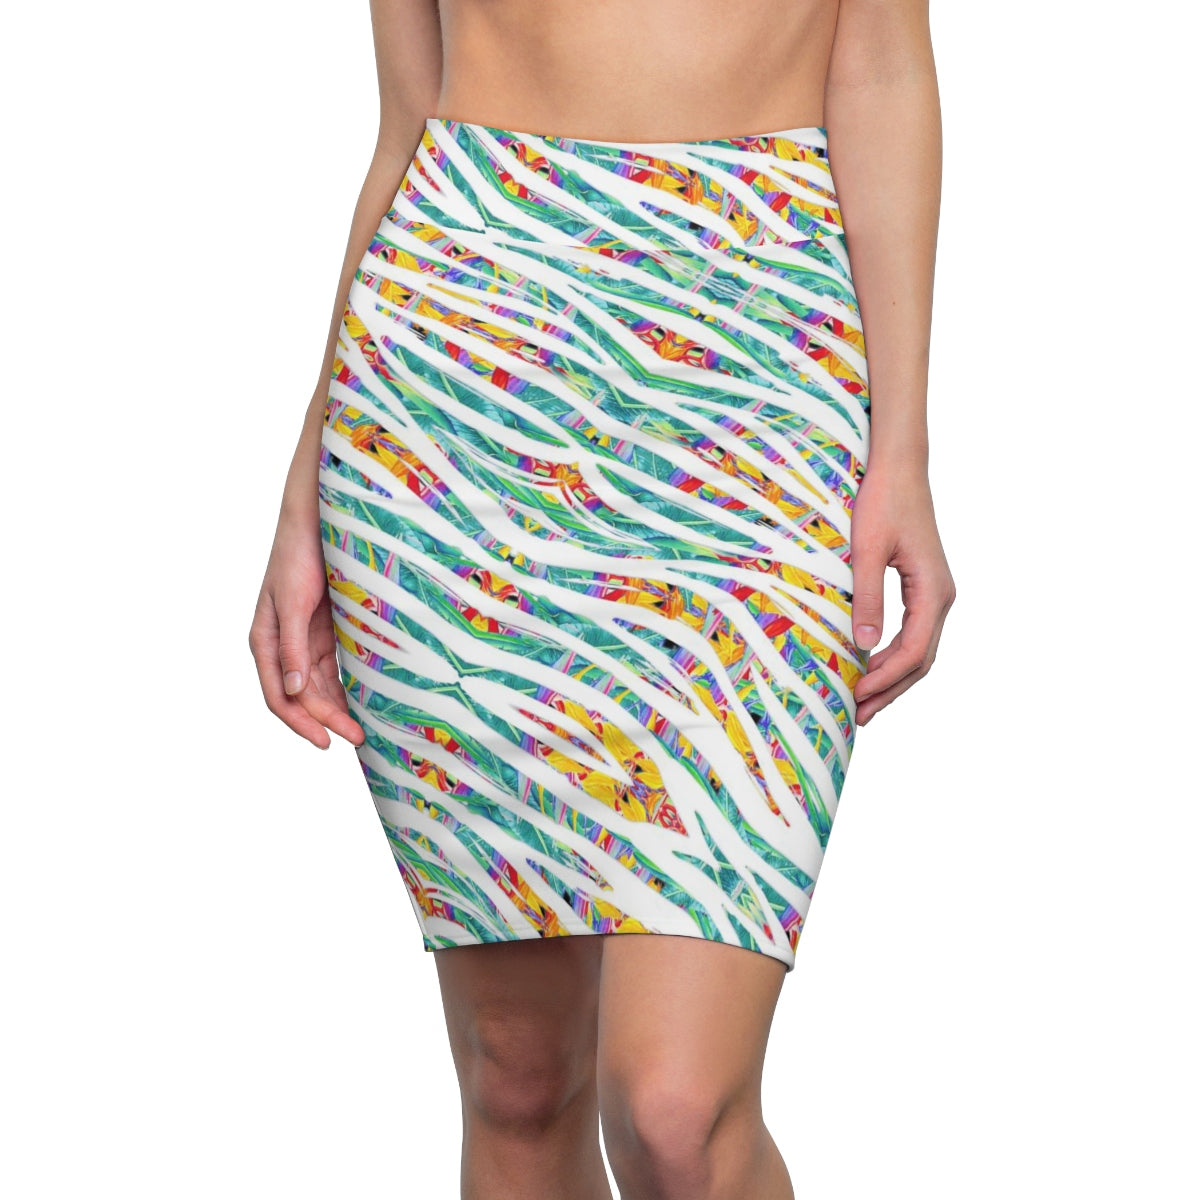 Fiji Islands #0005 (High Waist Skirt)